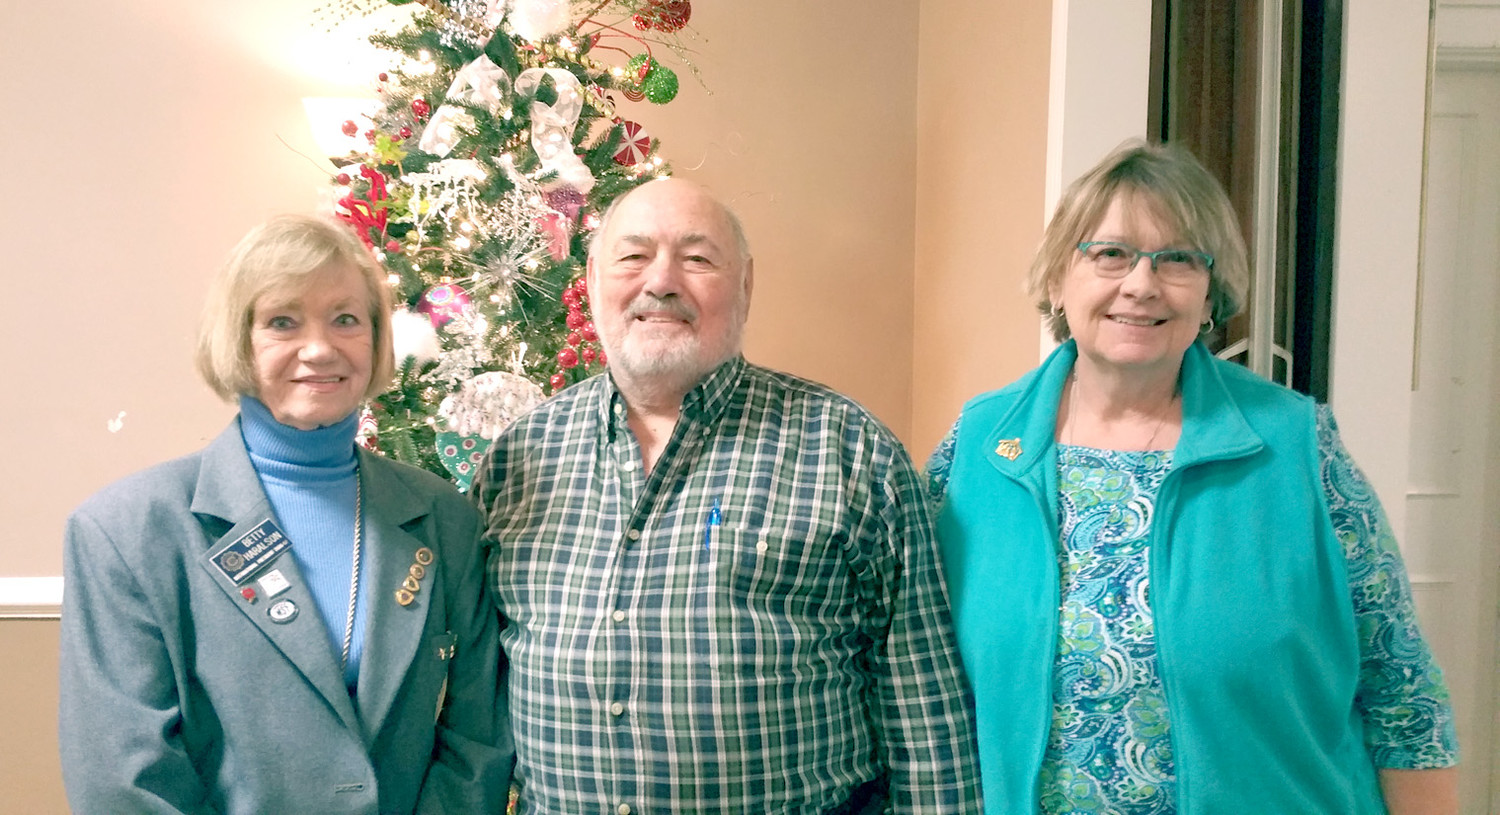 Ceveland Civitan Club had a new member induction in November. Betty Harleson, past international president, inducted  new members Joe and Nancy Marucco.